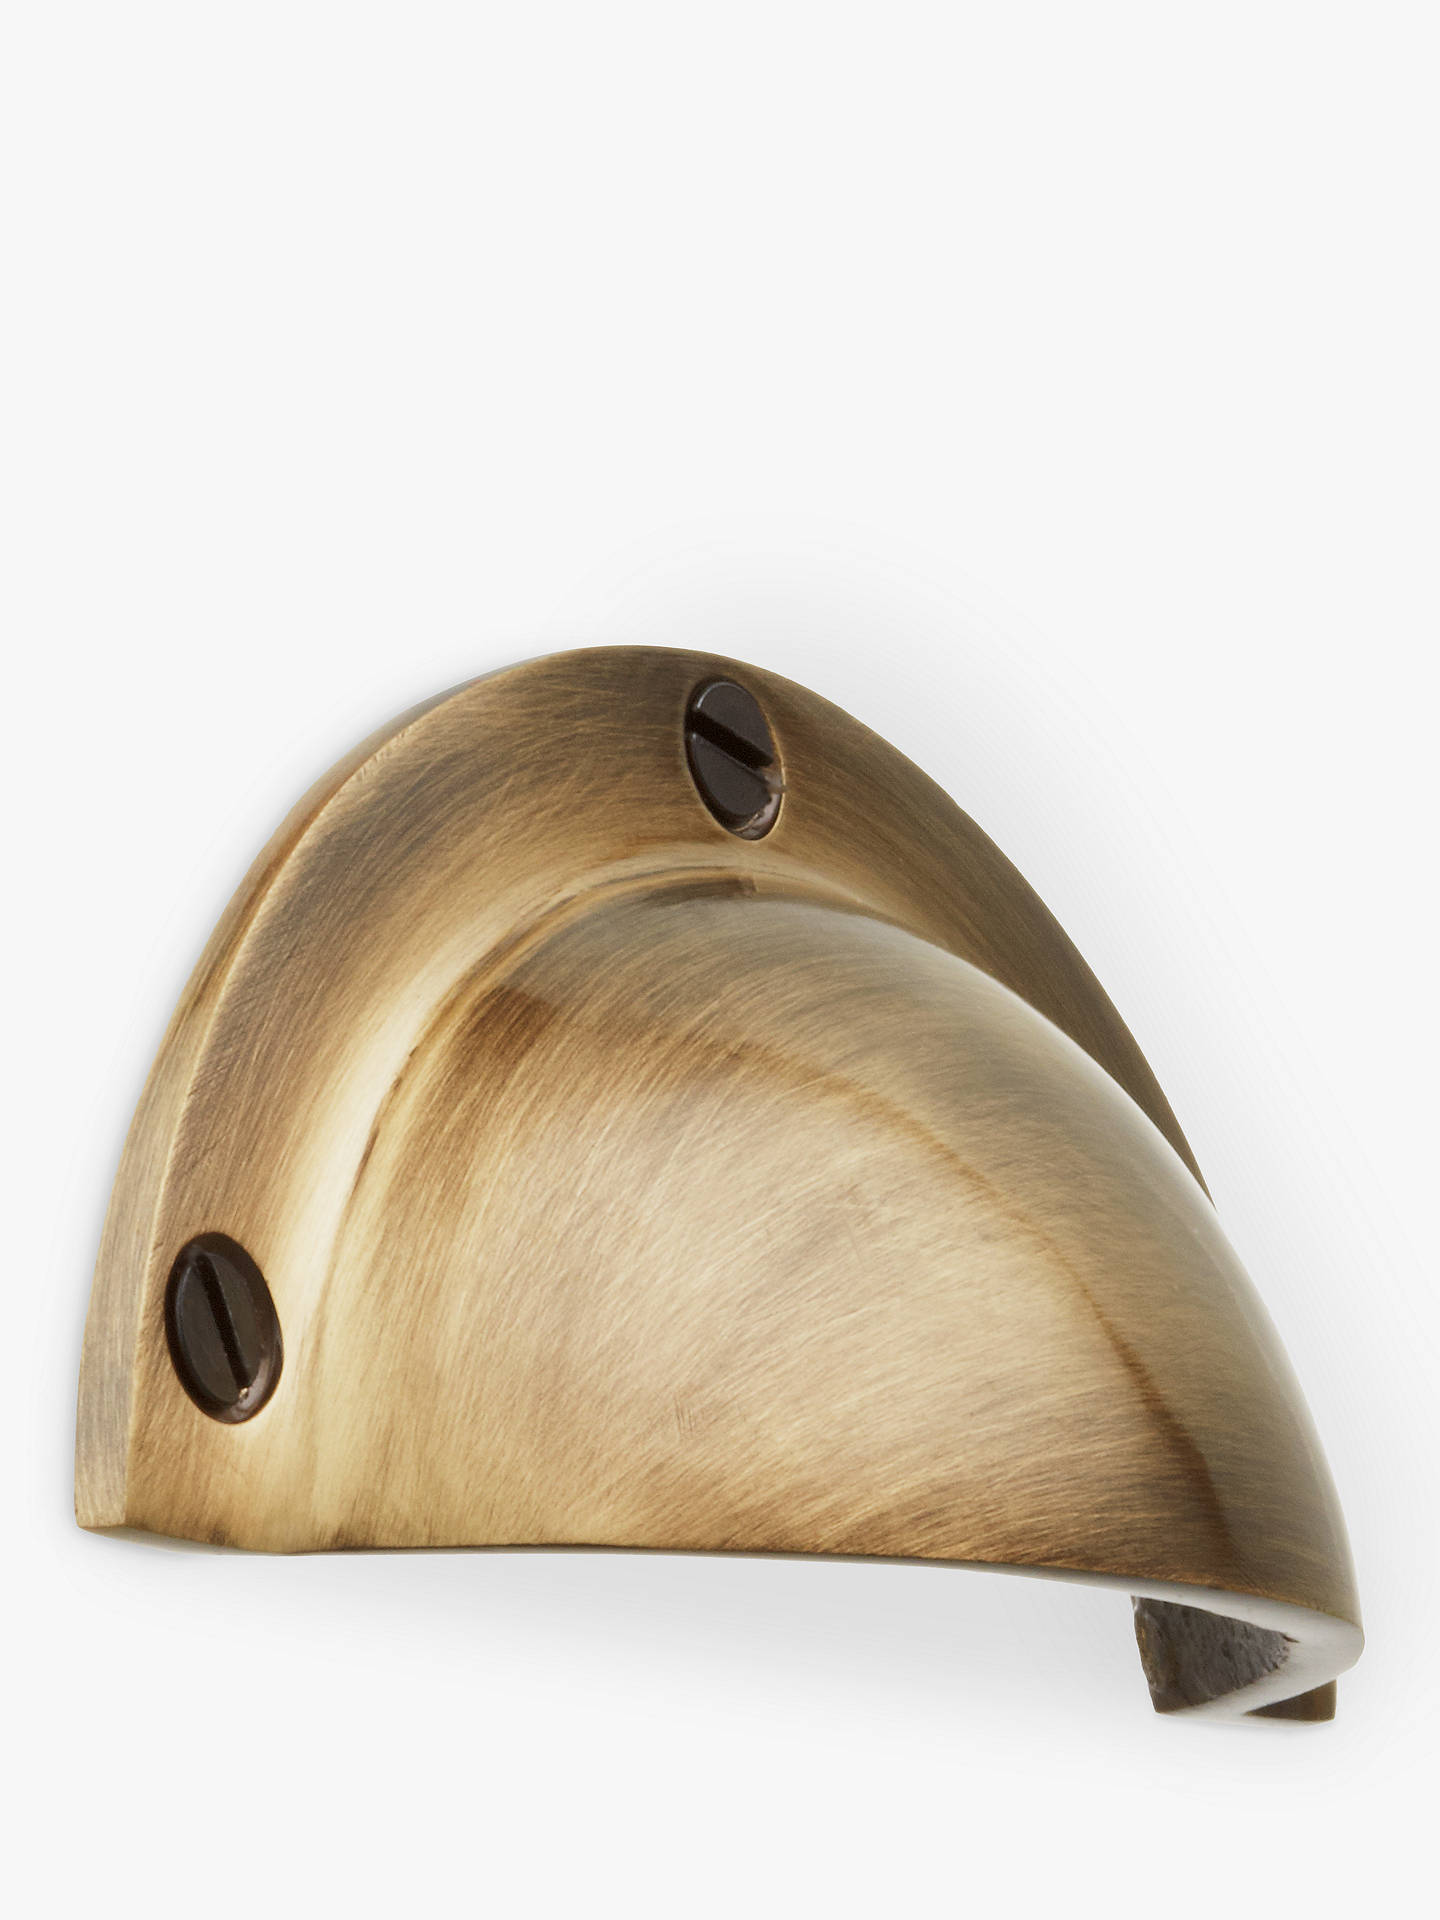 BuyJohn Lewis & Partners Cup Drawer Pull, Antique Brass Online at johnlewis.com